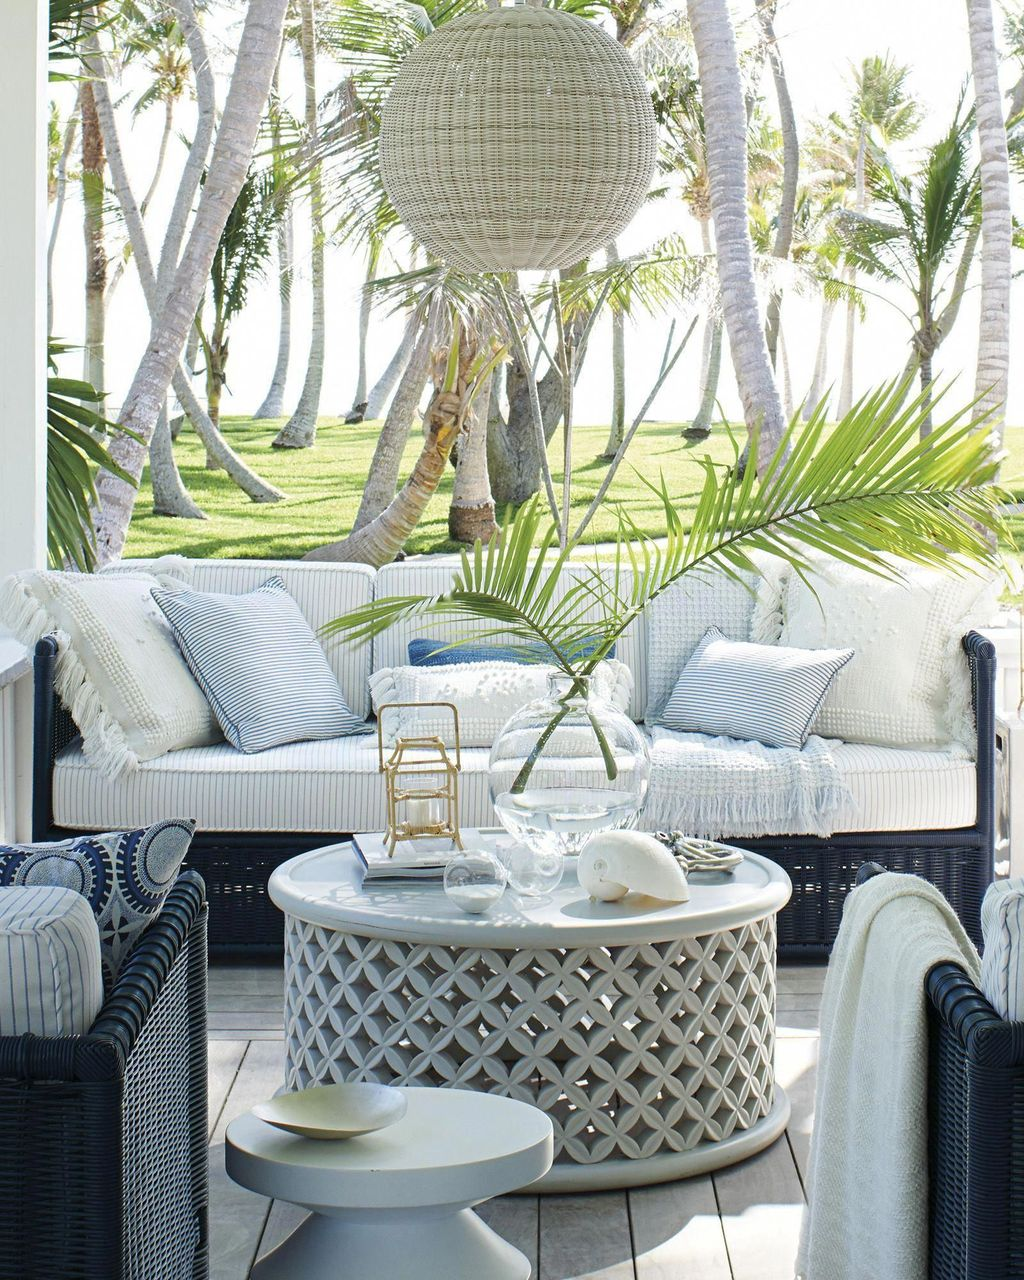 Admirable Cozy Patio Design Ideas To Relaxing On A Sunny Day 30